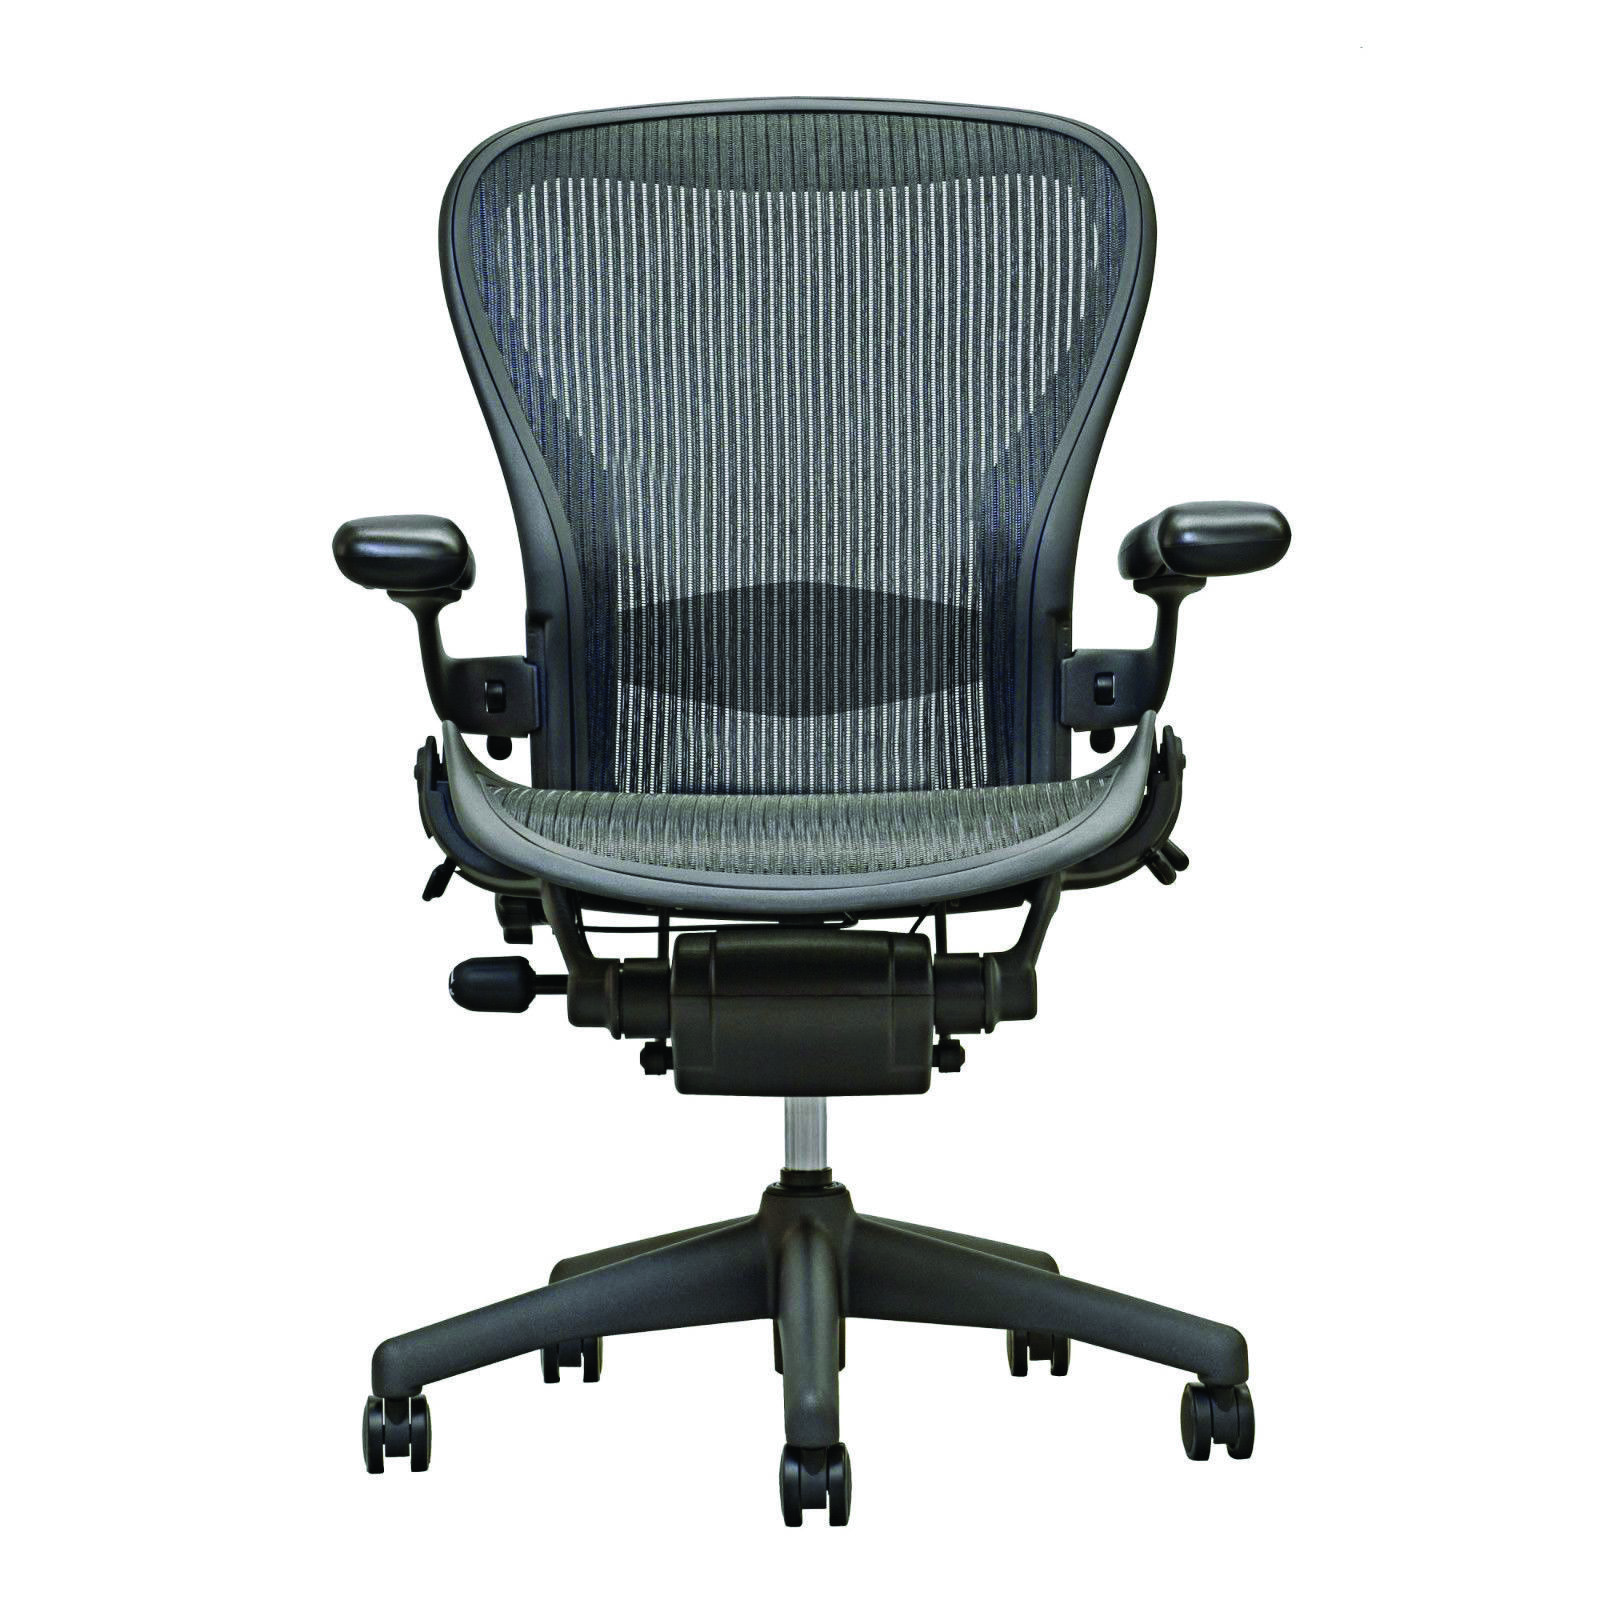 Surprising The 14 Best Office Chairs Of 2019 Best Office Chair Gmtry Best Dining Table And Chair Ideas Images Gmtryco